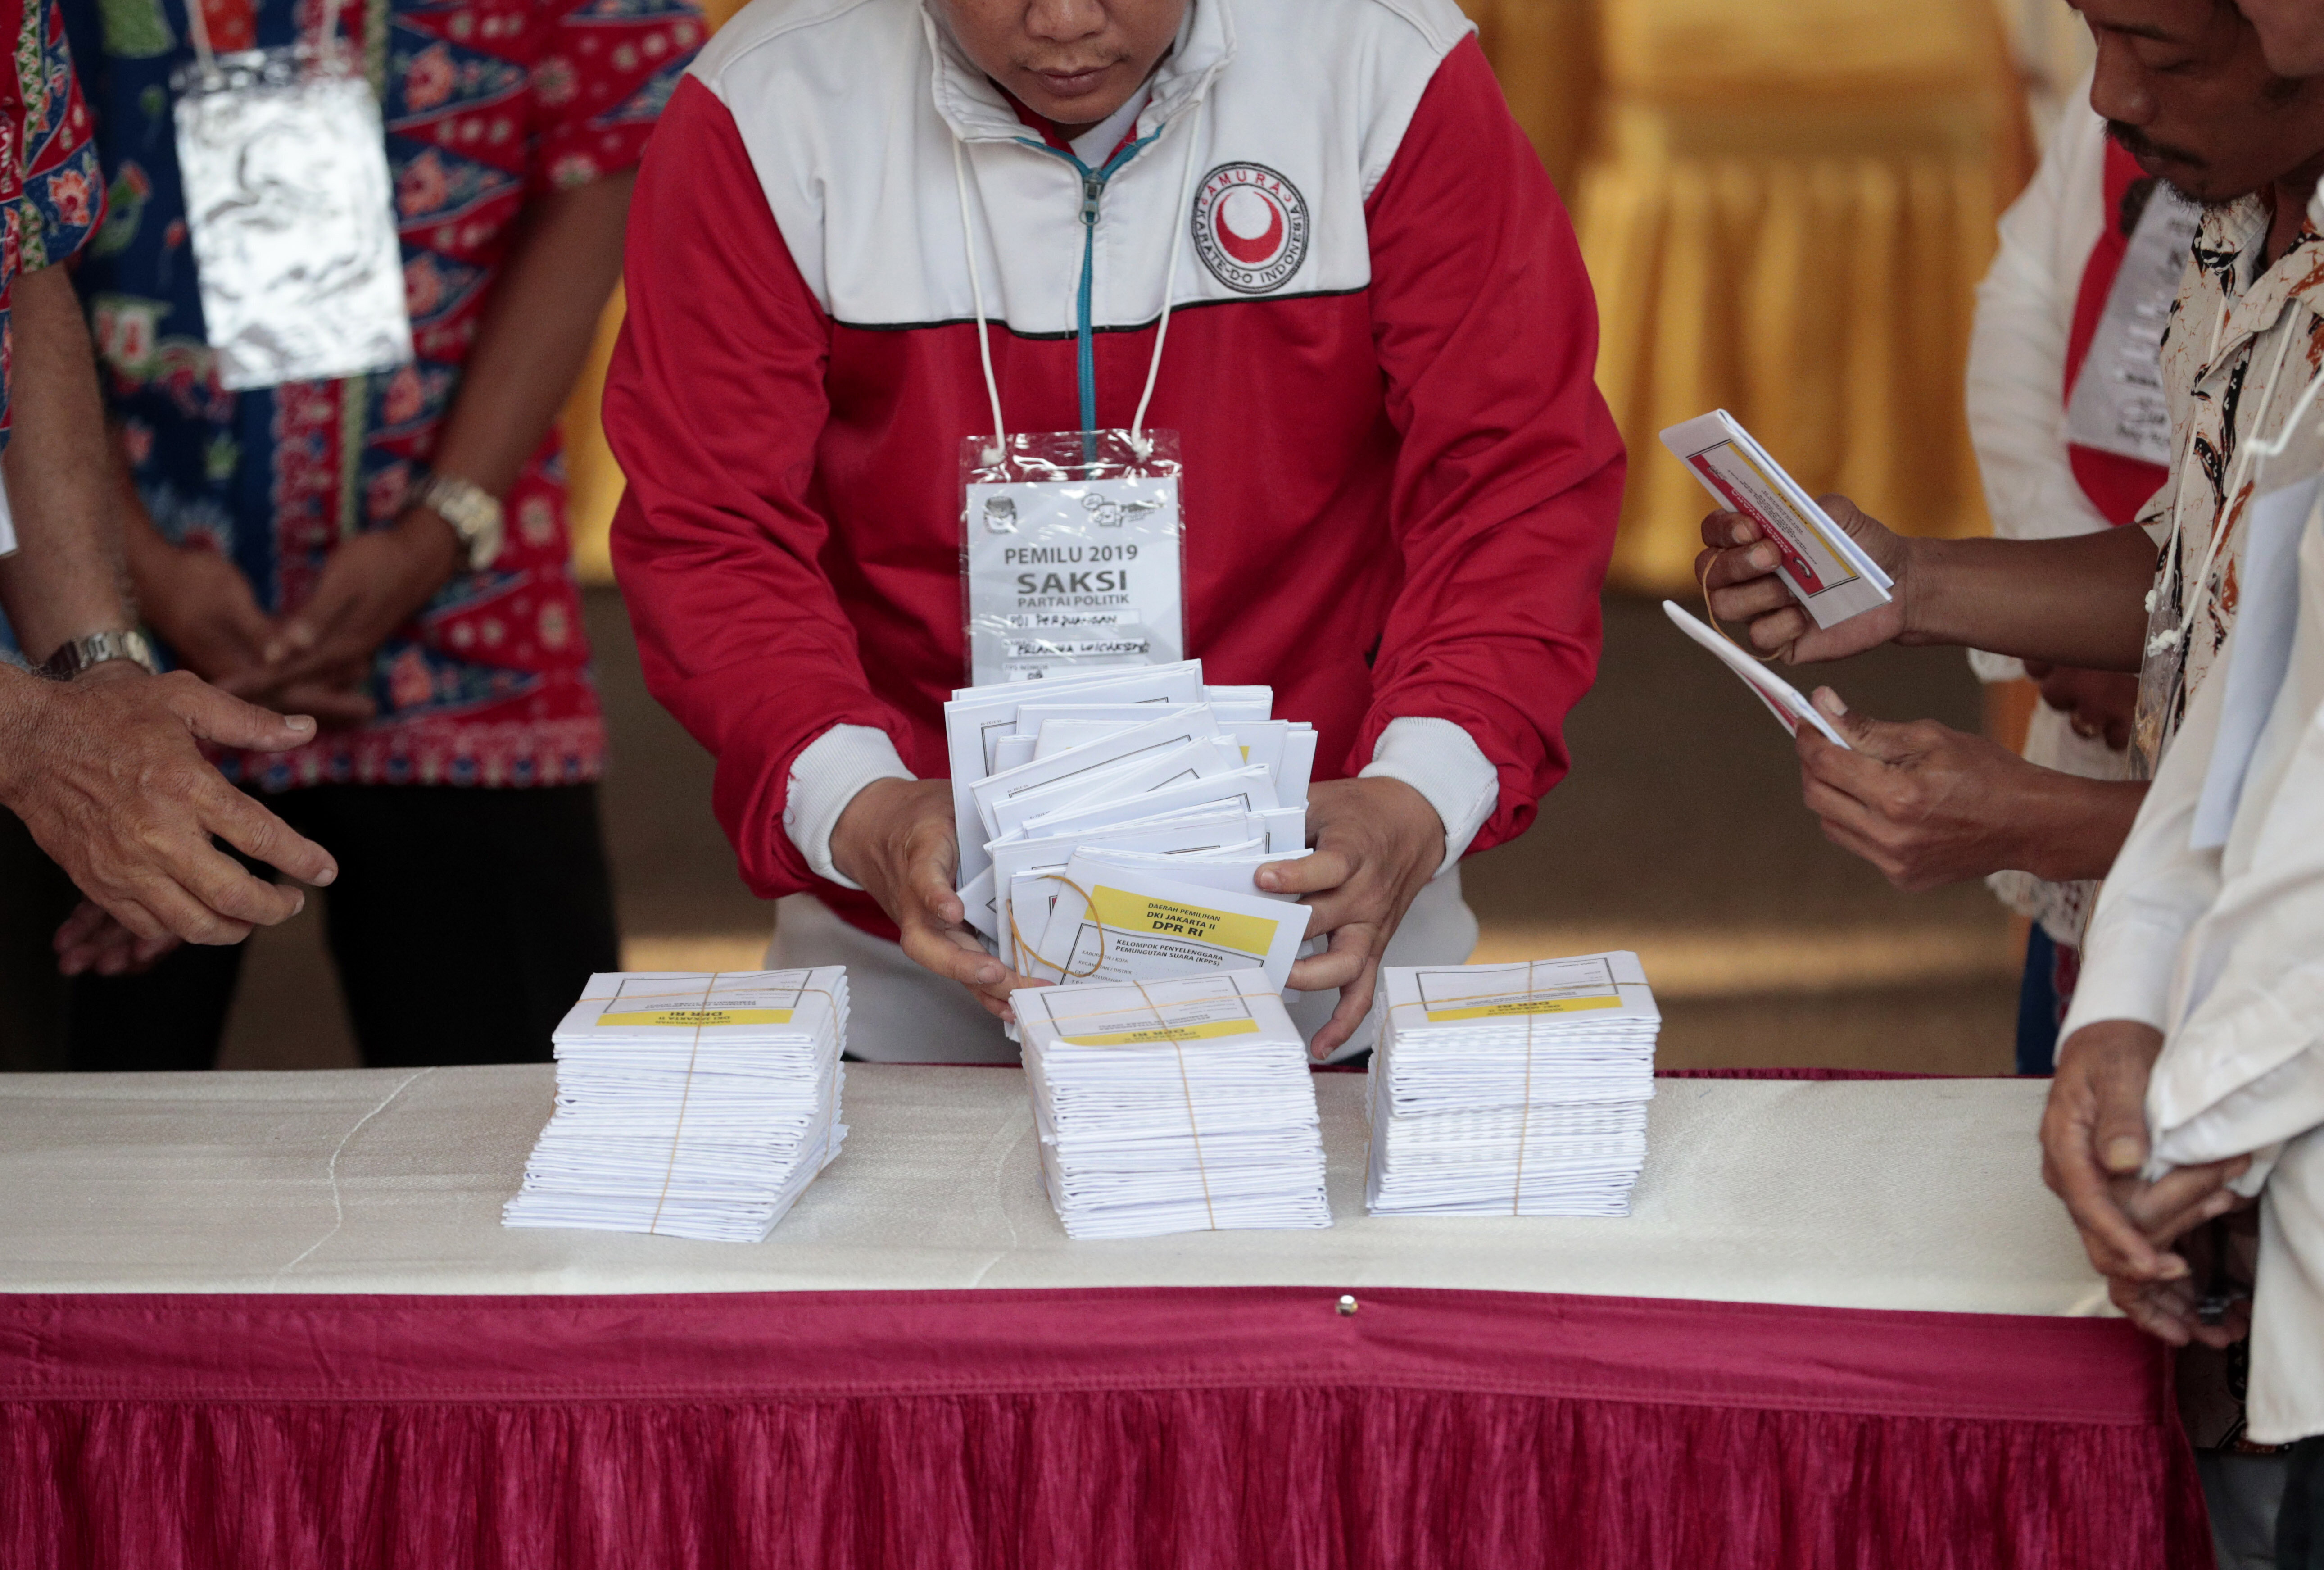 Electoral workers count ballots during the election at a polling station in Jakarta, Indonesia, on April 17, 2019.